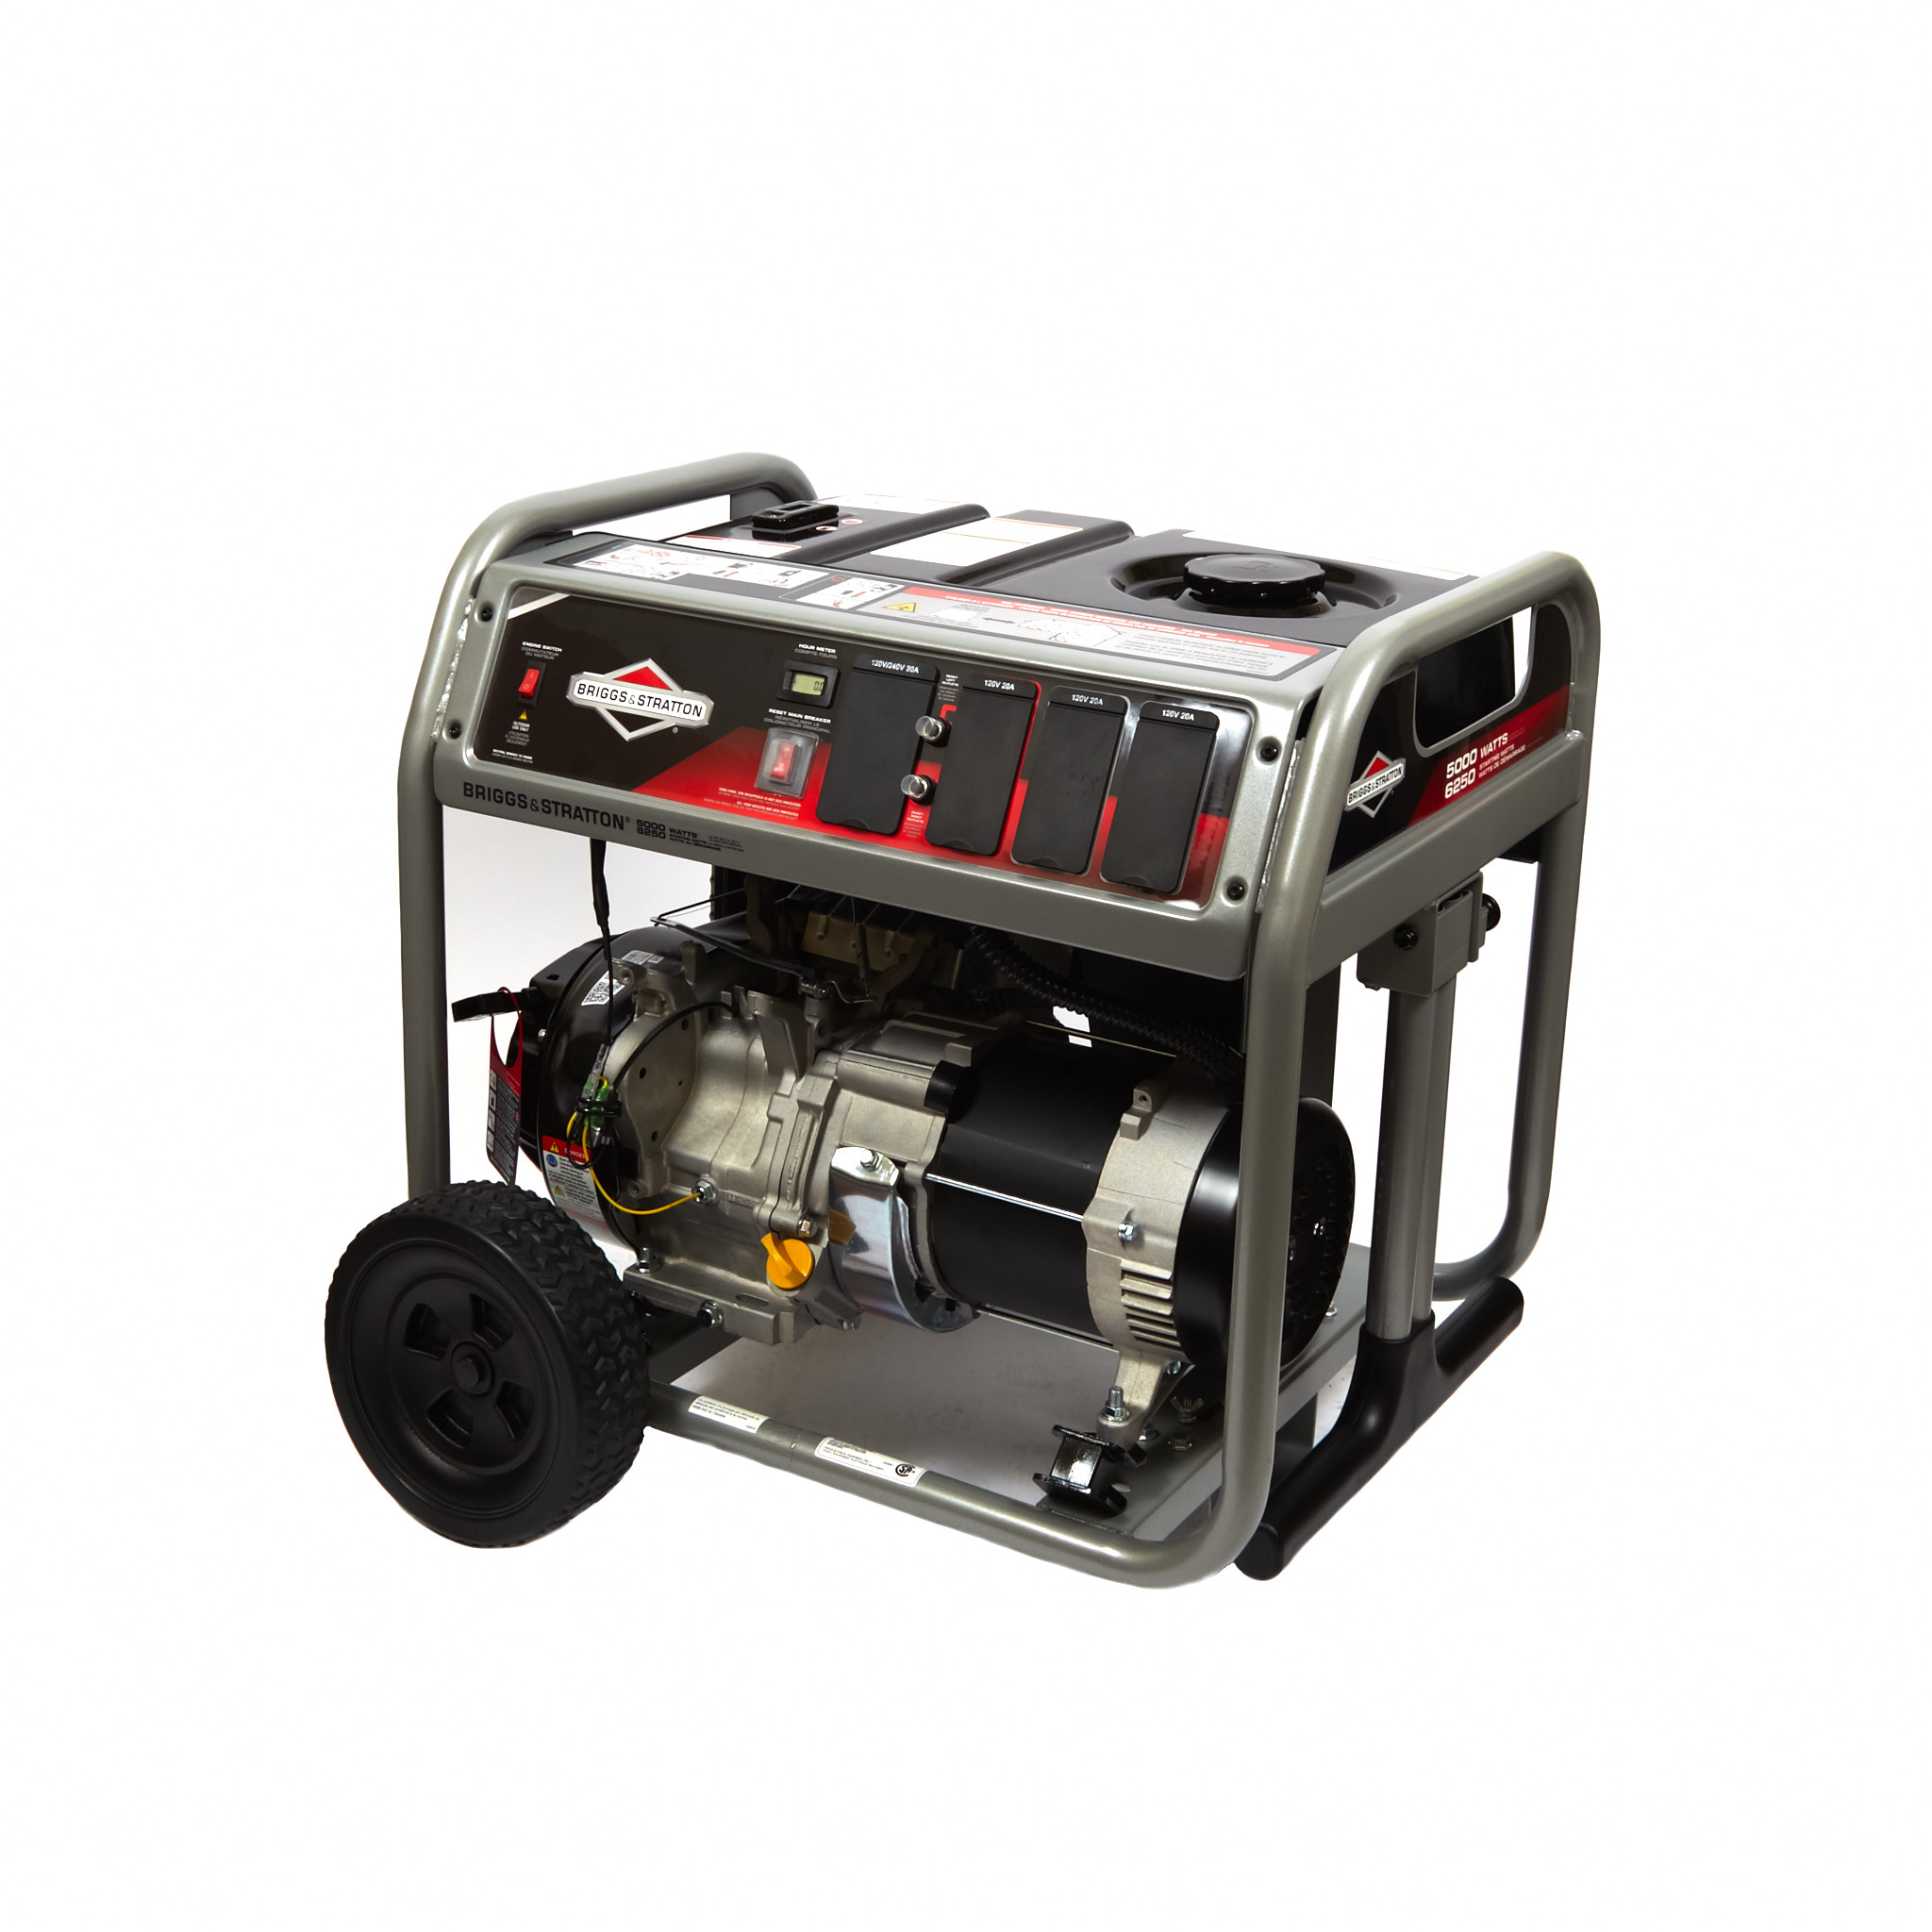 Briggs and Stratton 5000 Watt Portable Generator